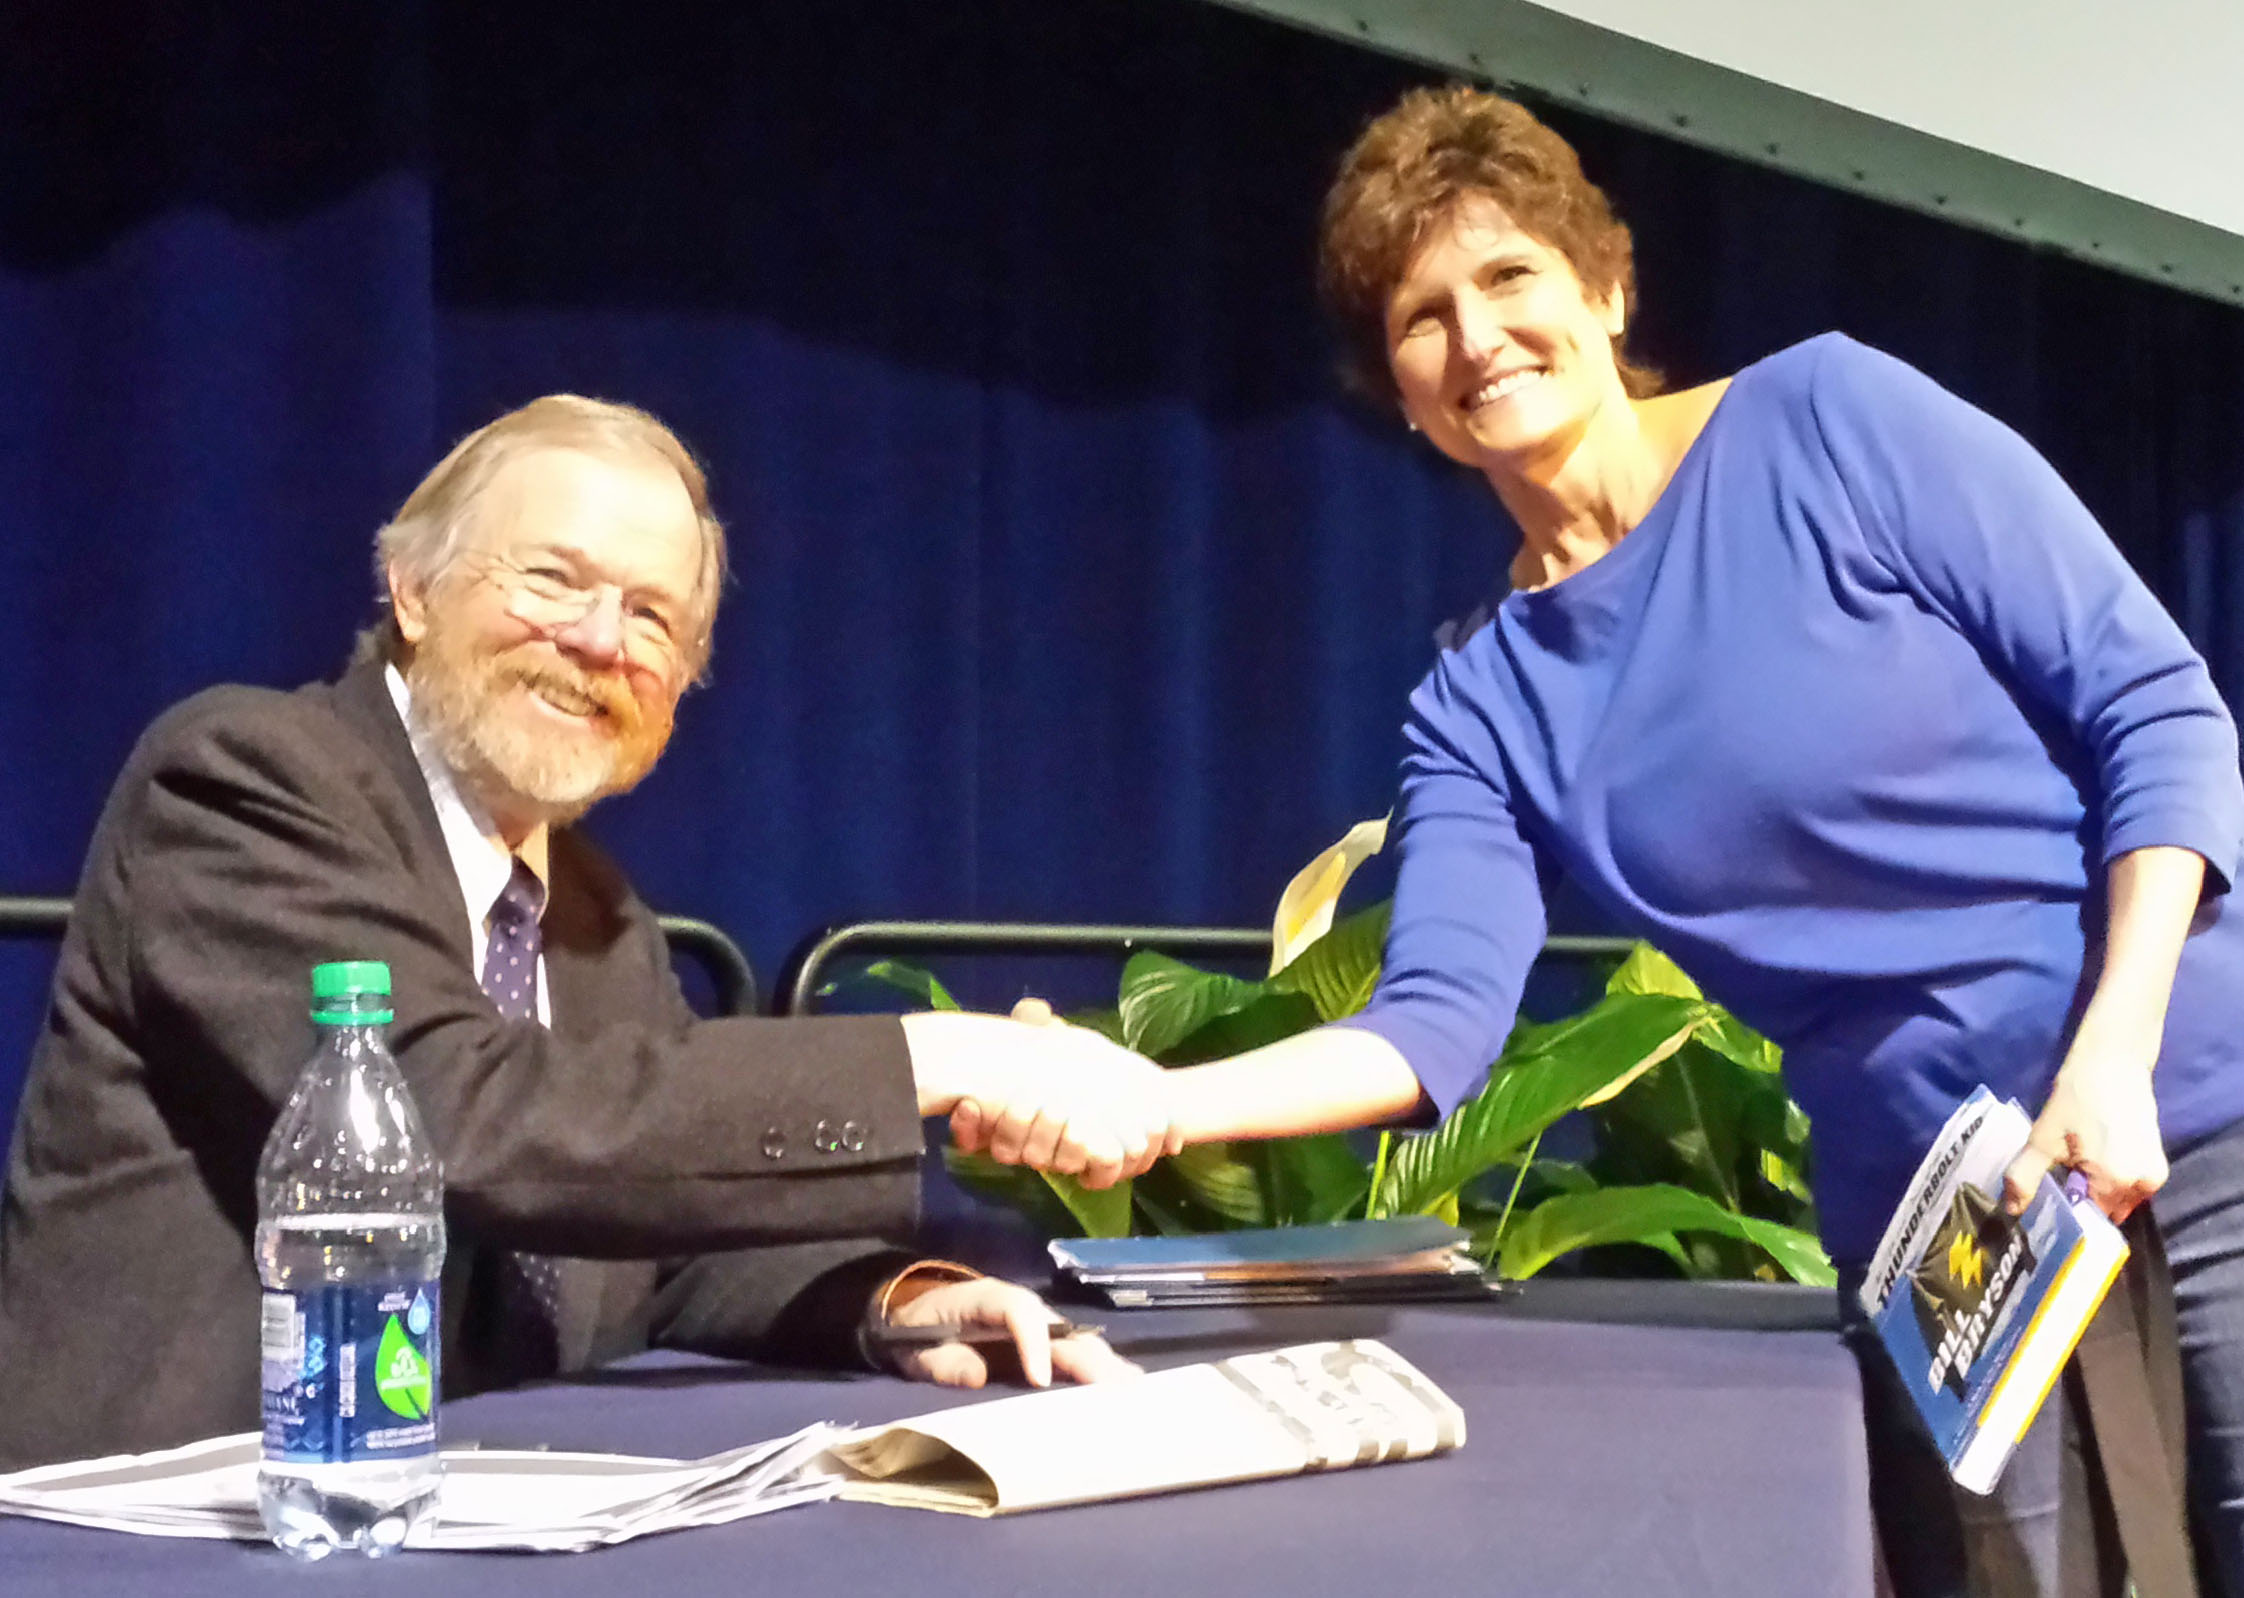 Author Bill Bryson keeps the crowd laughing